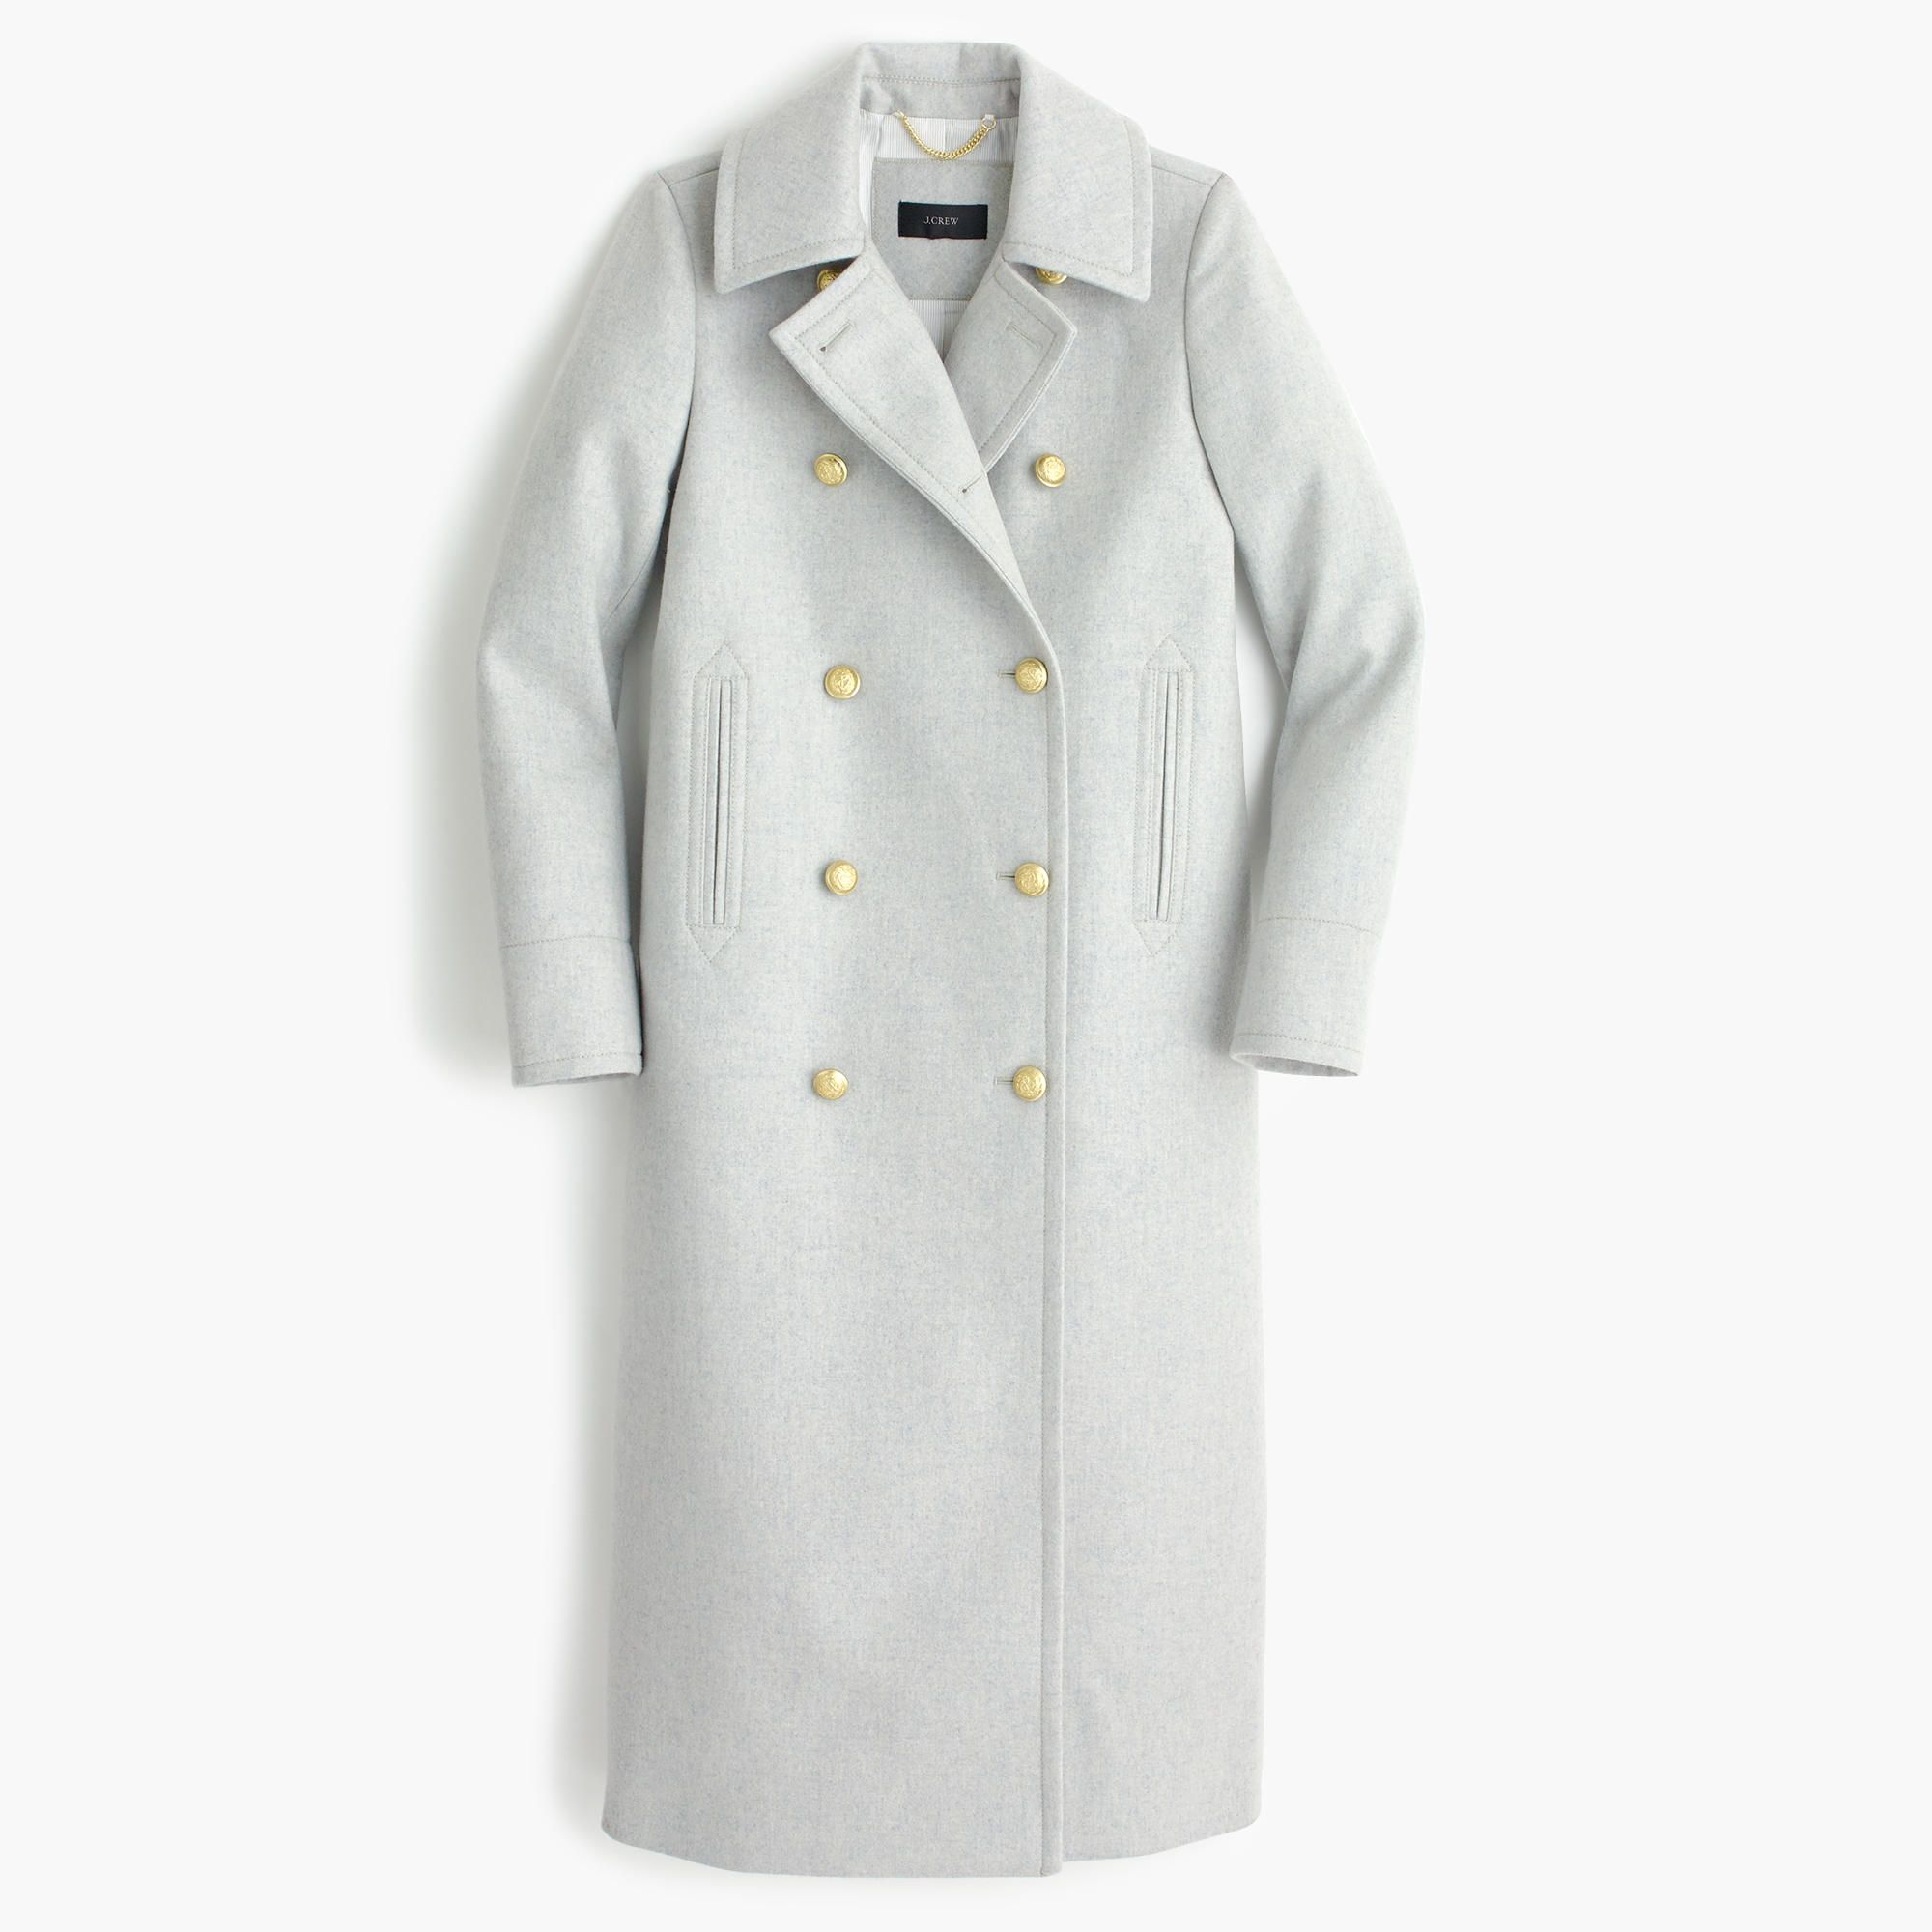 J Crew Double Breasted Topcoat In Wool Cashmere Coats For Women Petite Coat Clothes